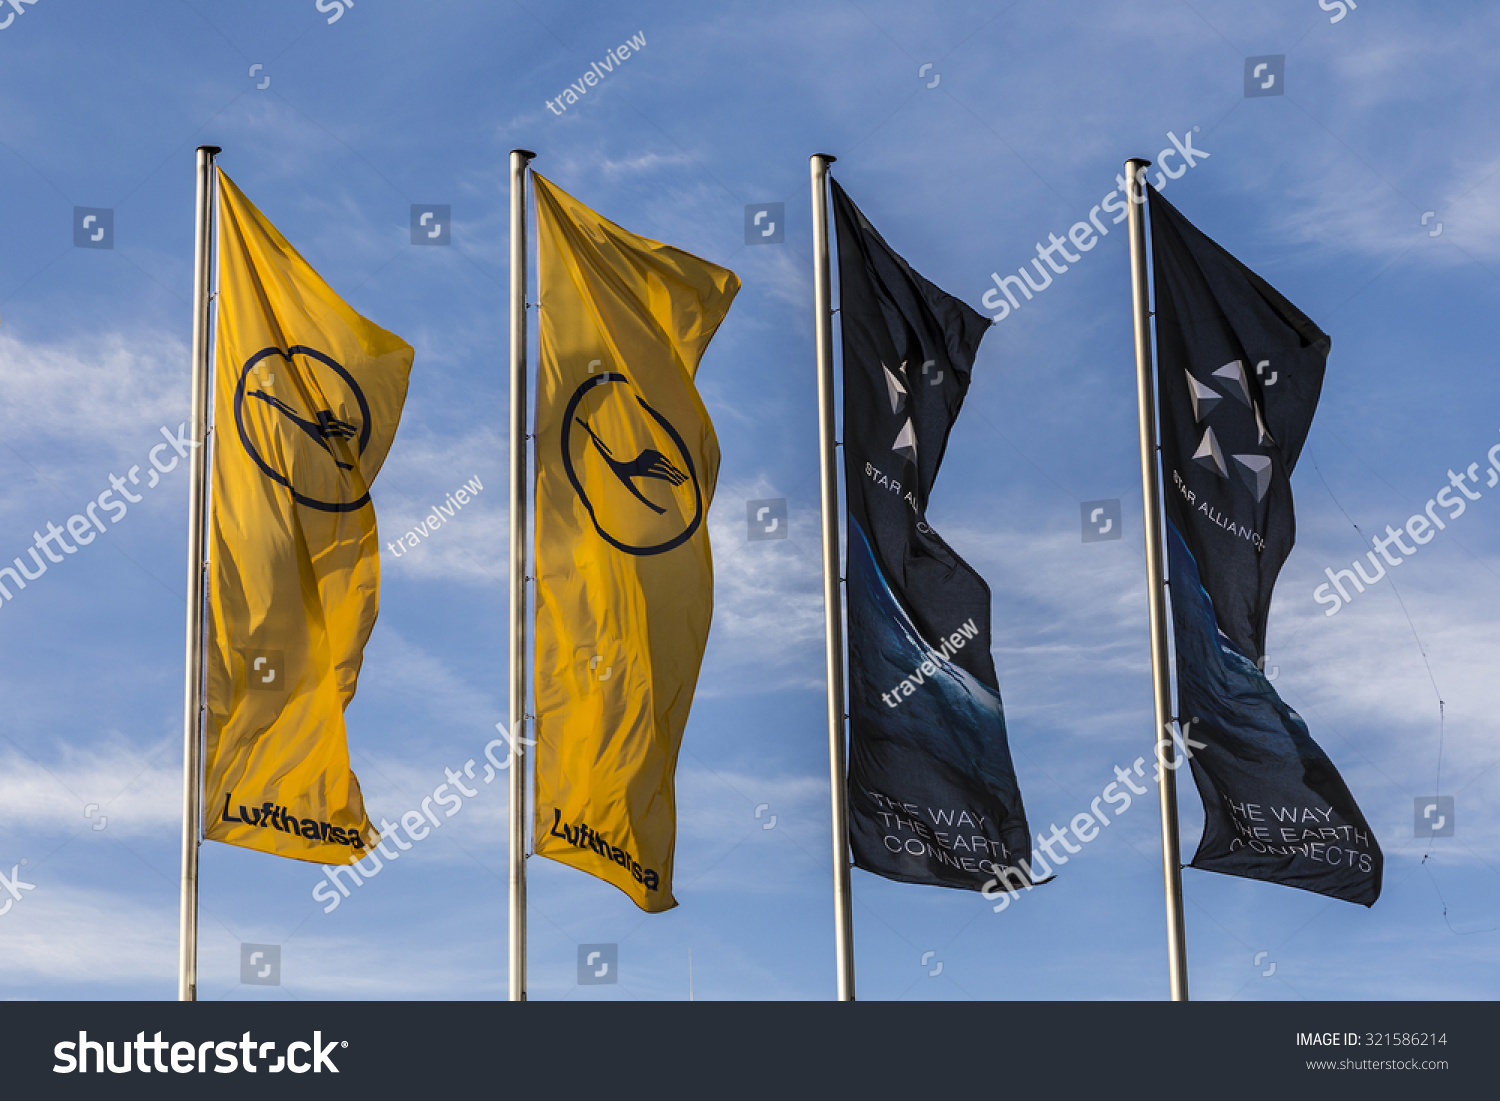 frankfurt germany may 18 2015 lufthansa flag with lufthansa symbol the crane in frankfurt. Black Bedroom Furniture Sets. Home Design Ideas